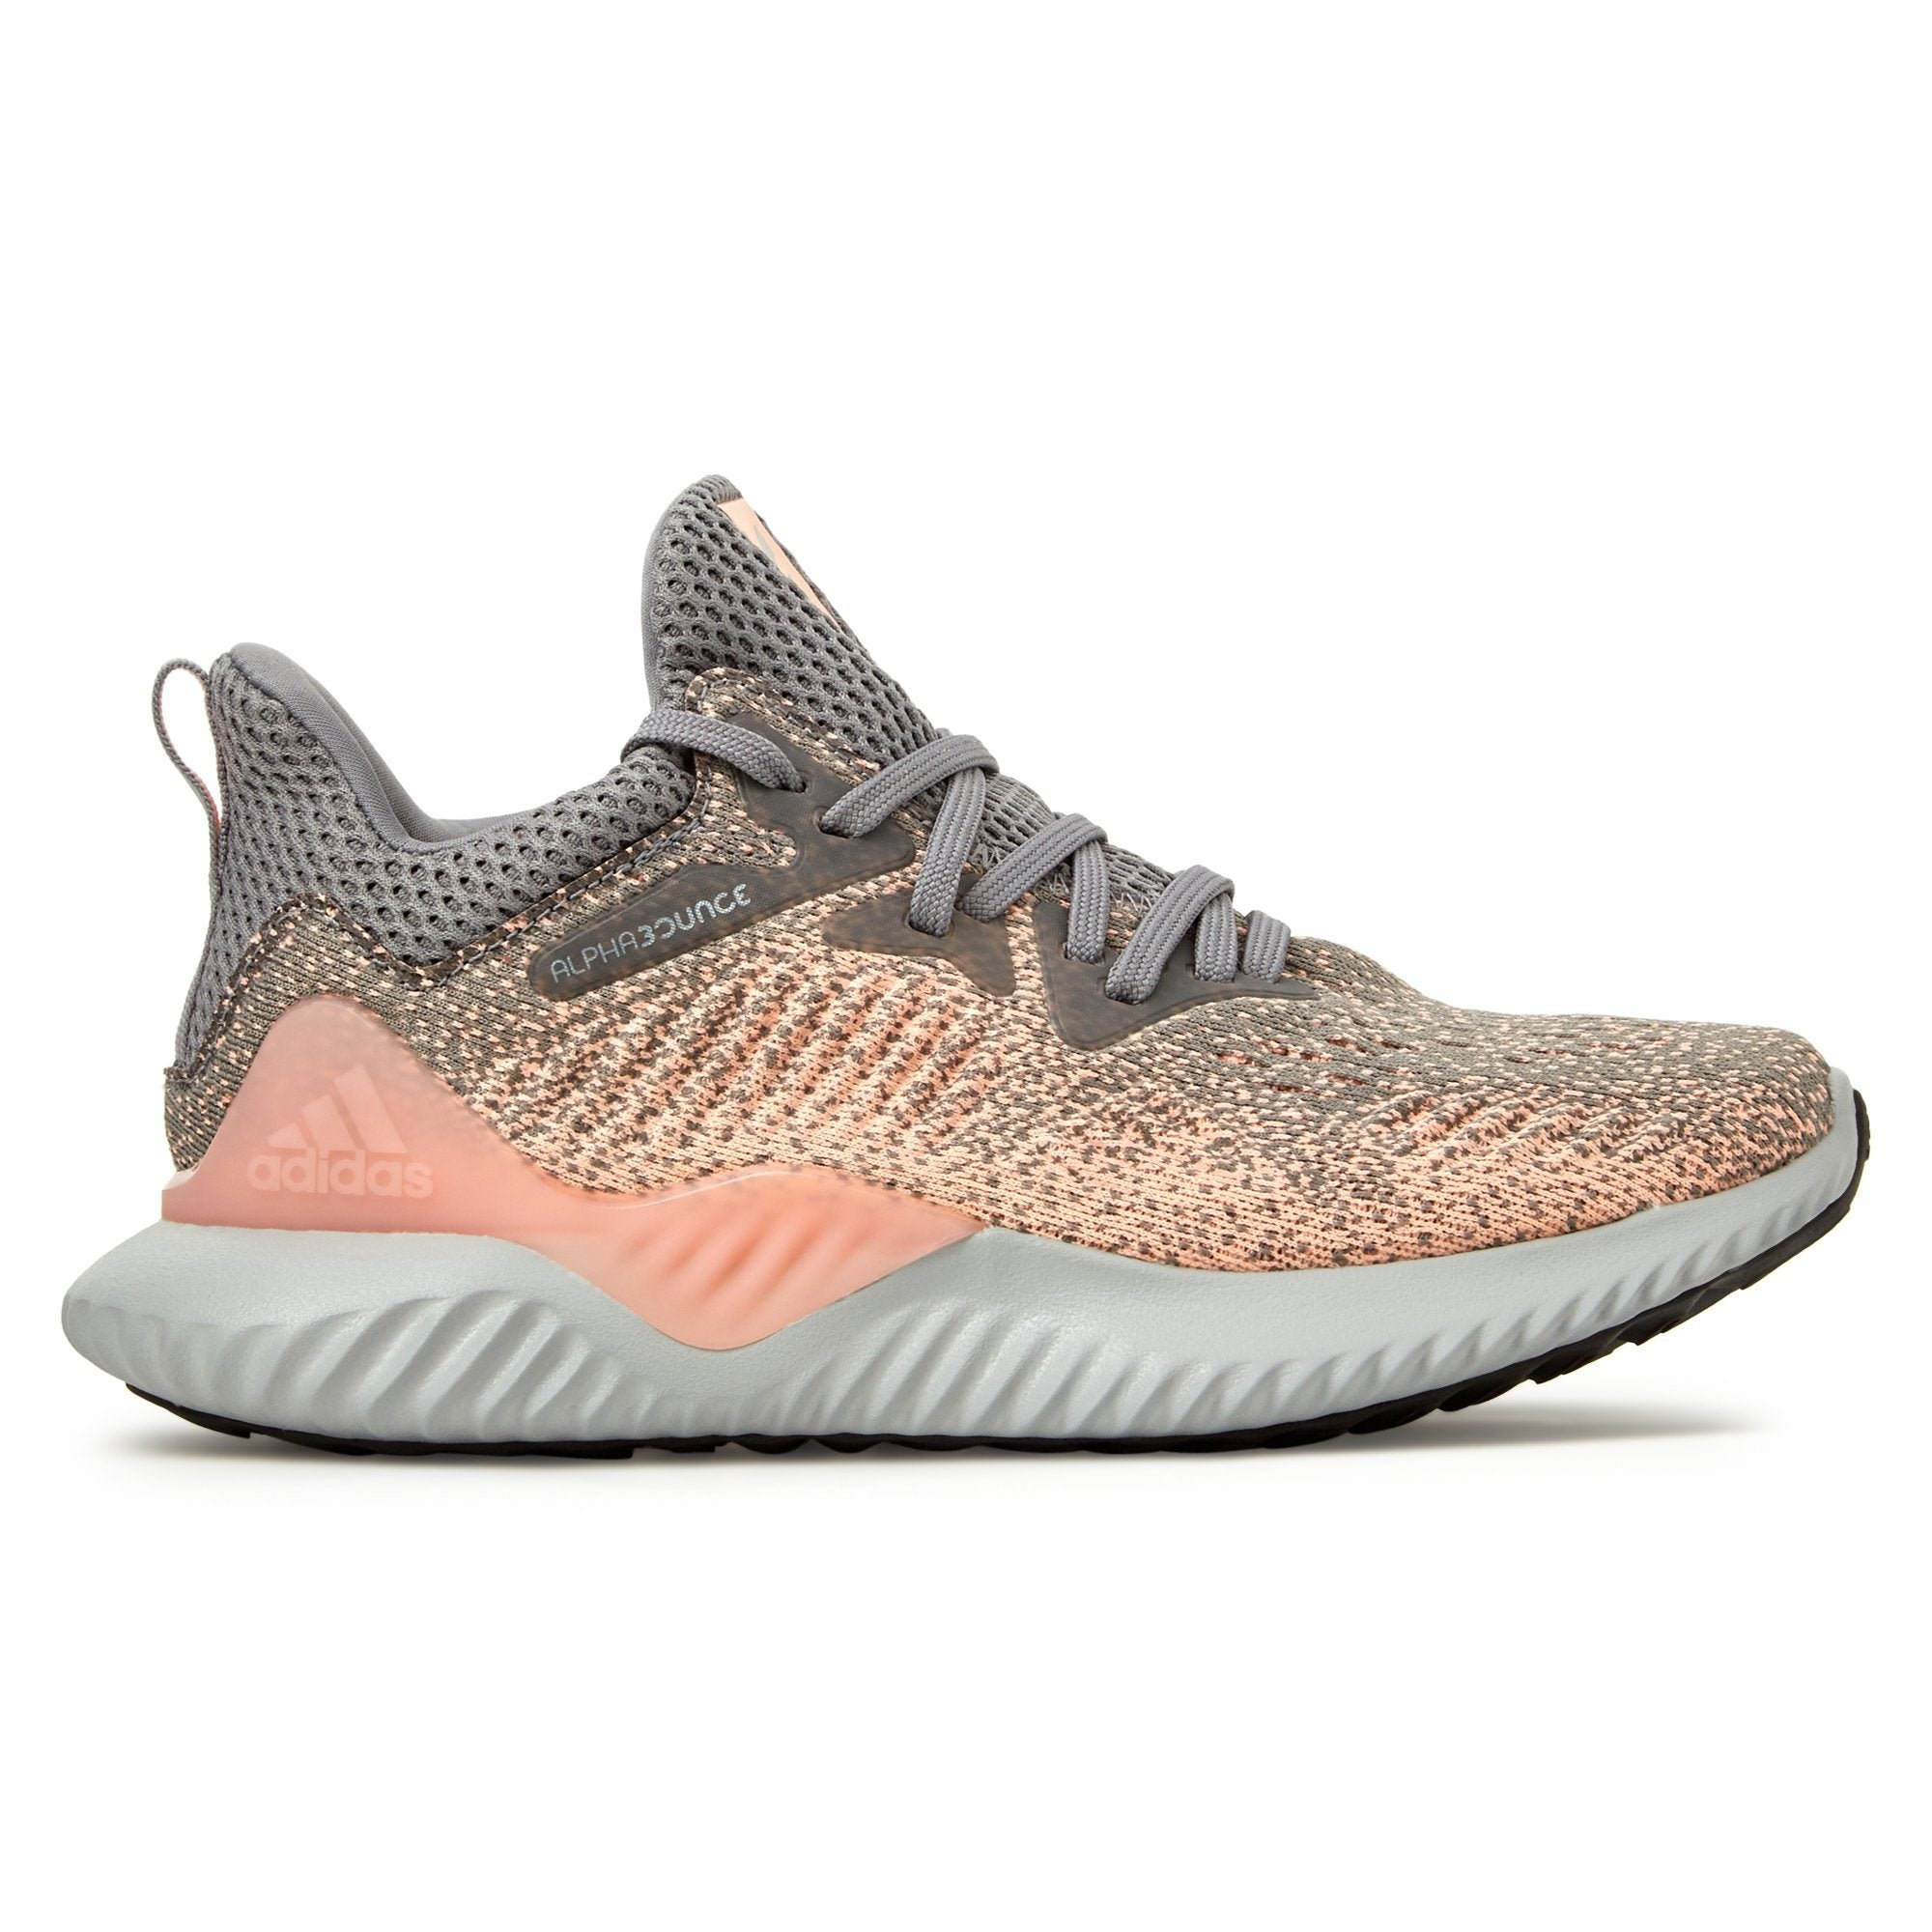 Adidas Kid's Alphabounce Beyond Shoes - Grey Three / Grey Two / Real Magenta Footwear Adidas